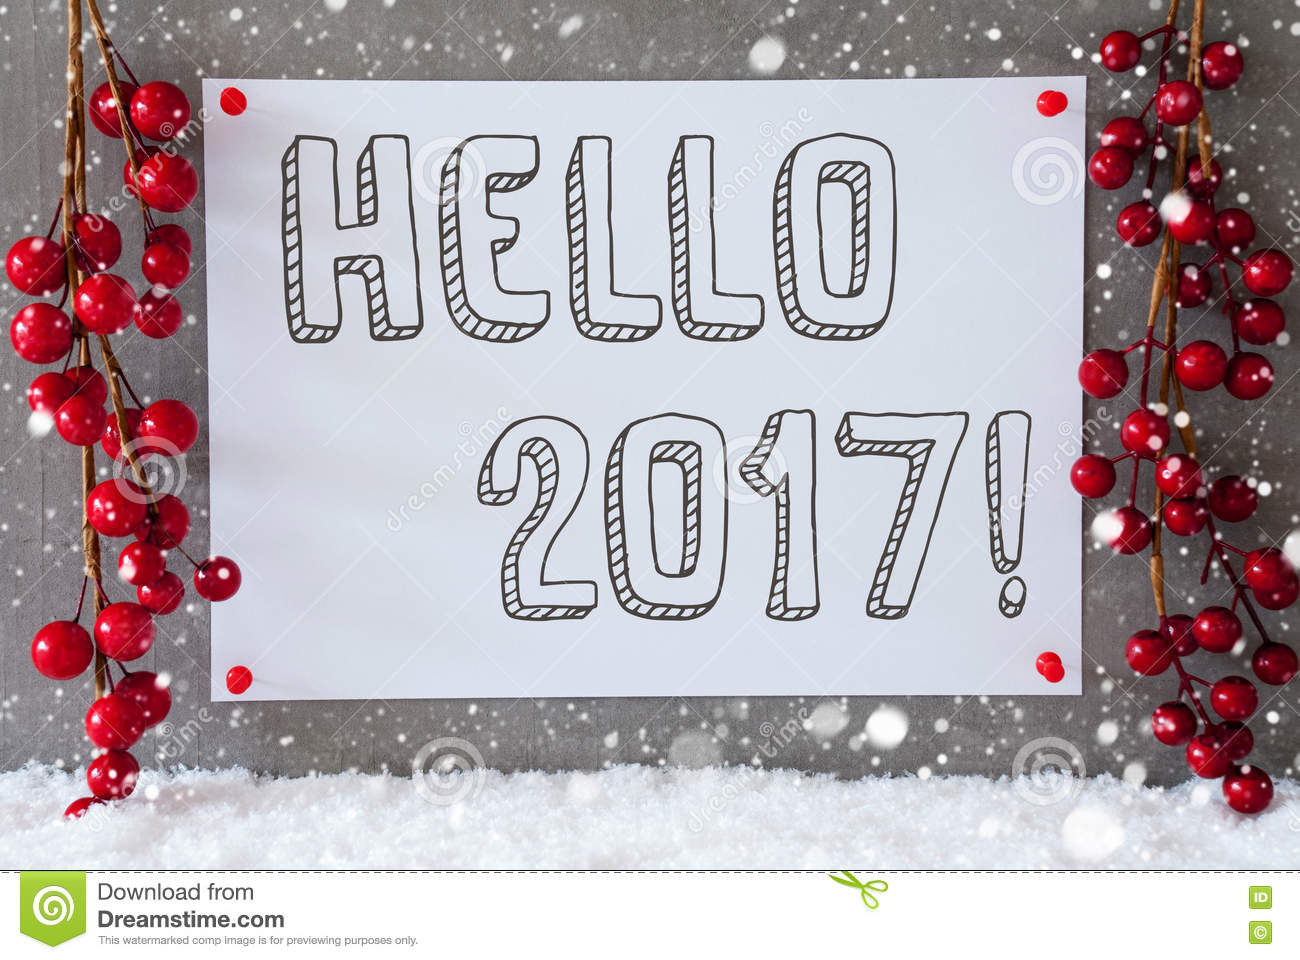 Good Background Snow Hello Winter Message 2017. At January , 2018. Label,  Snowflakes, Christmas Decoration, Text Hello 2017 Stock Photo   Image:. Photo